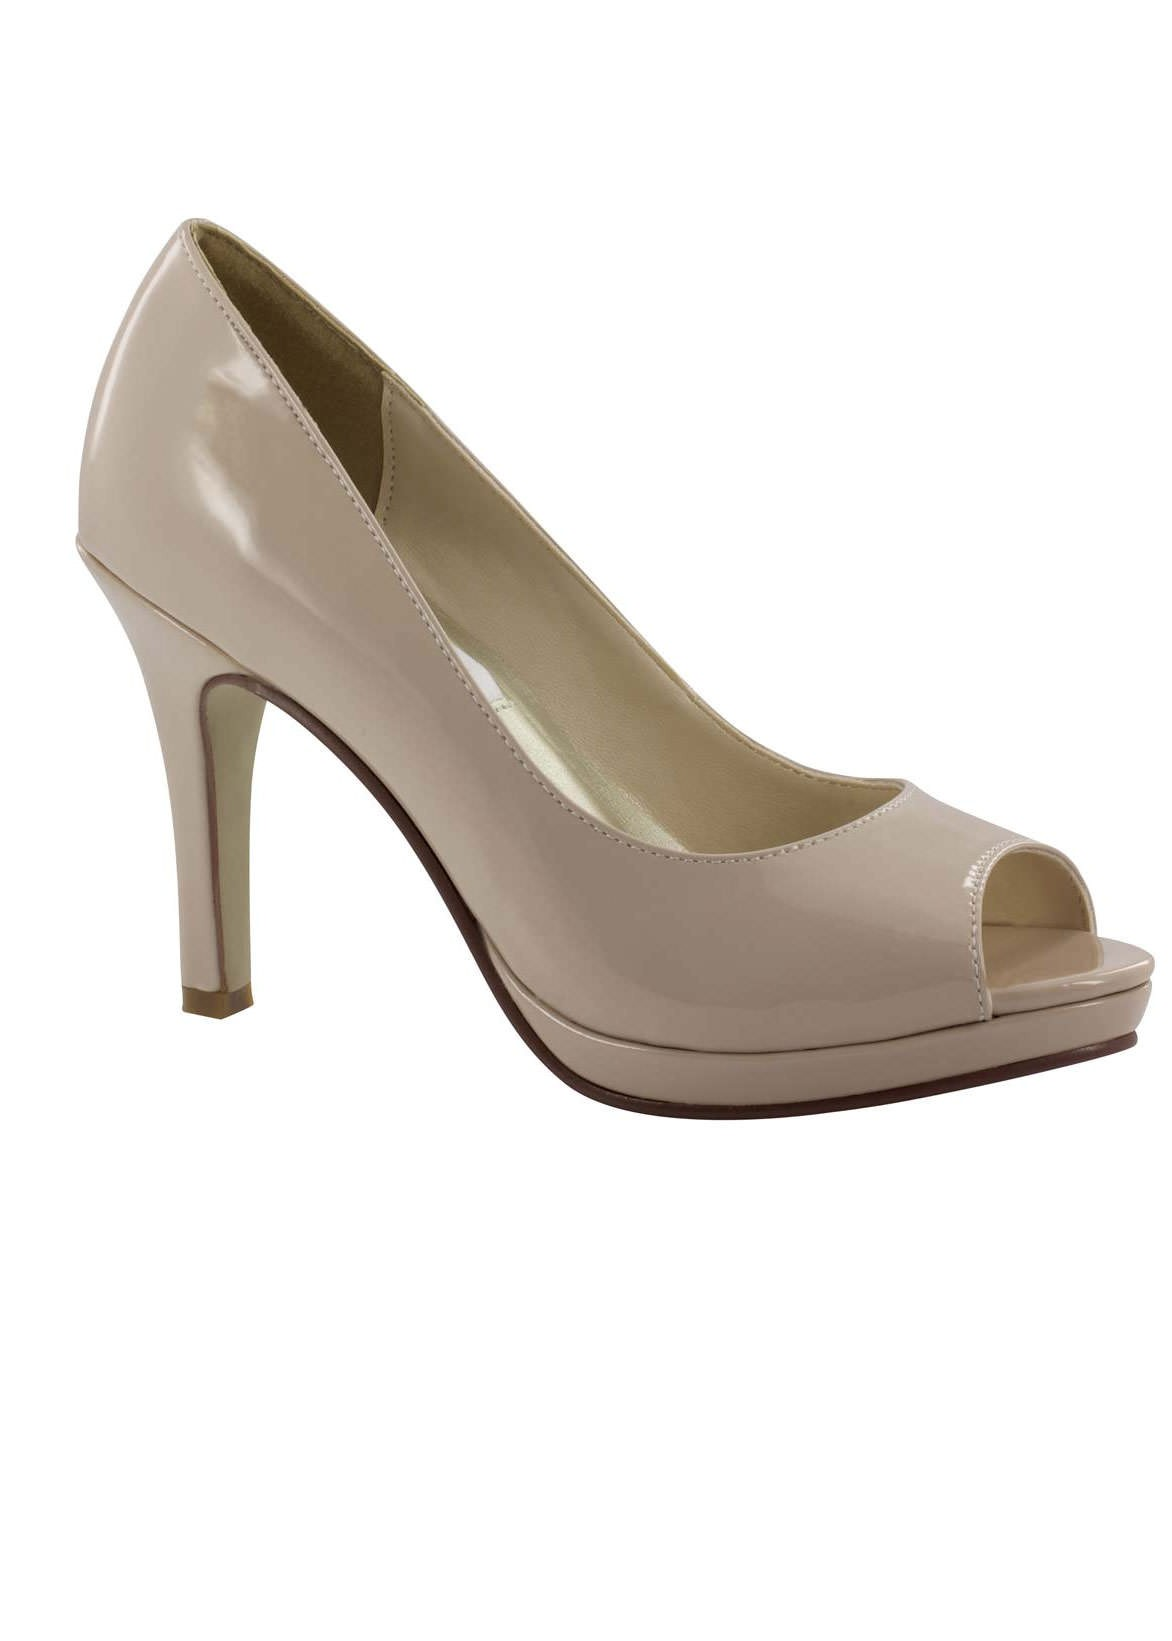 Sari by Dyeables Nude Patent Peep Toe Pumps